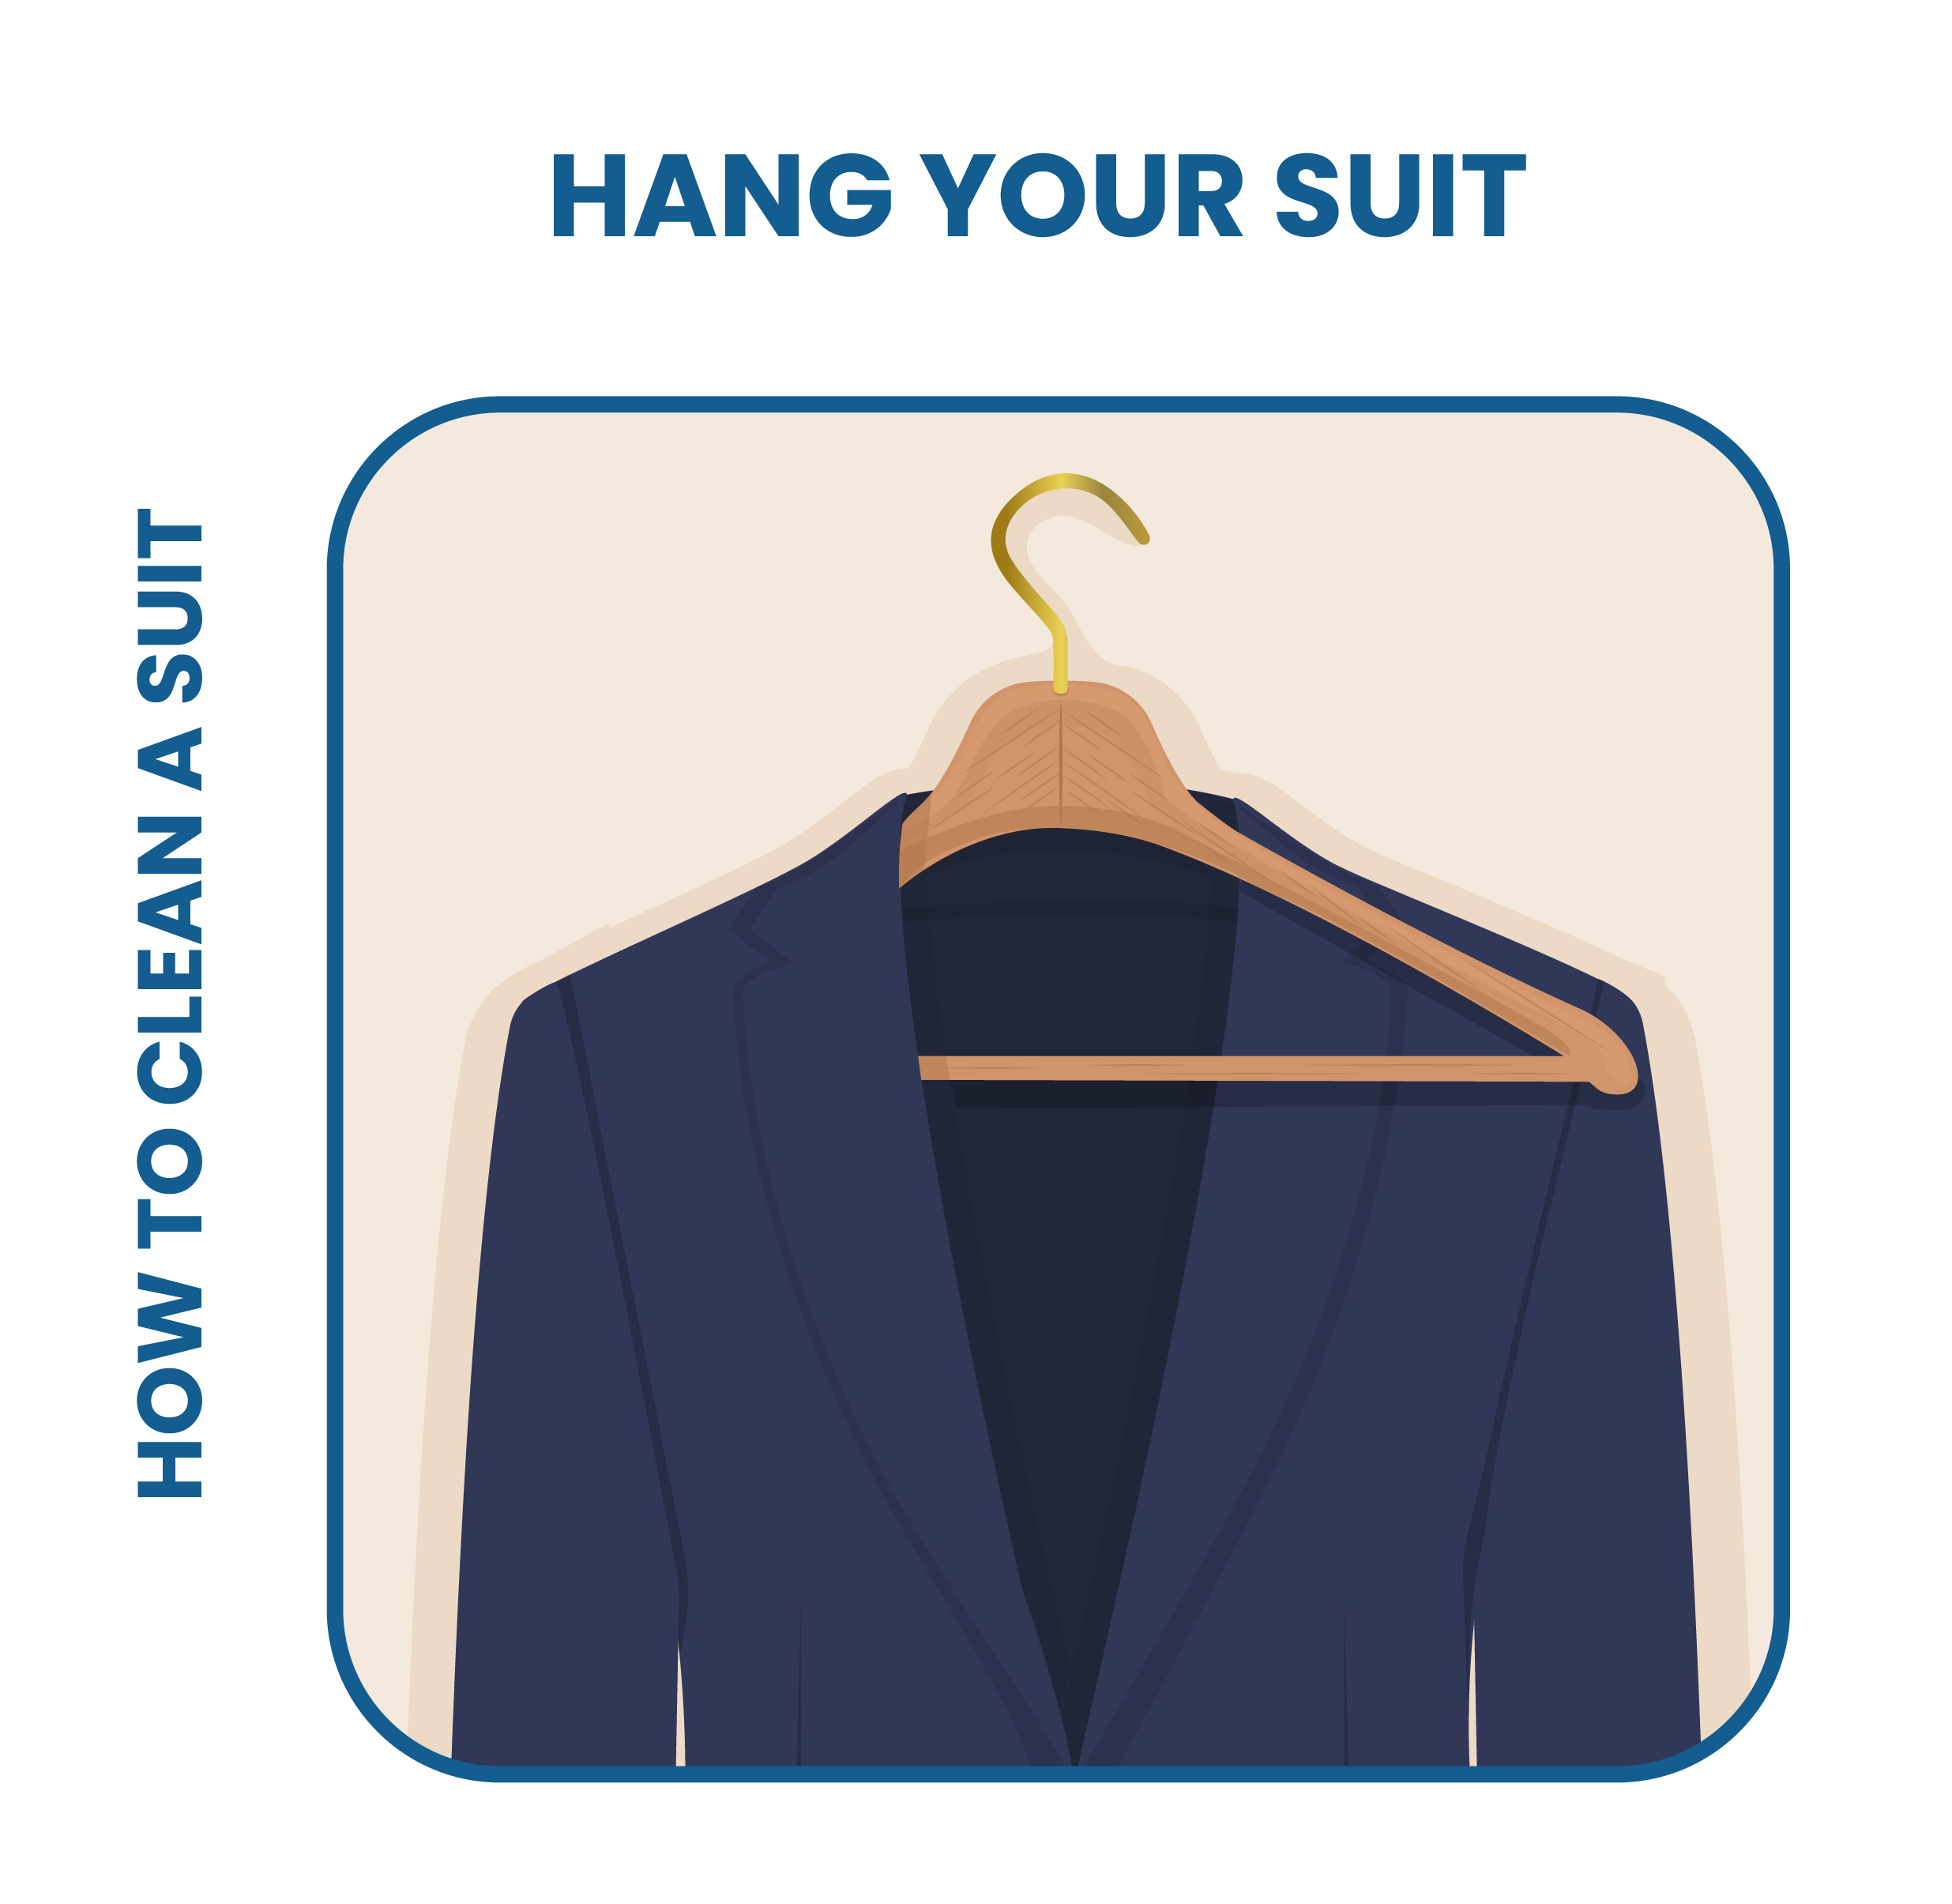 hang your suit properly by using a strong wooden hanger